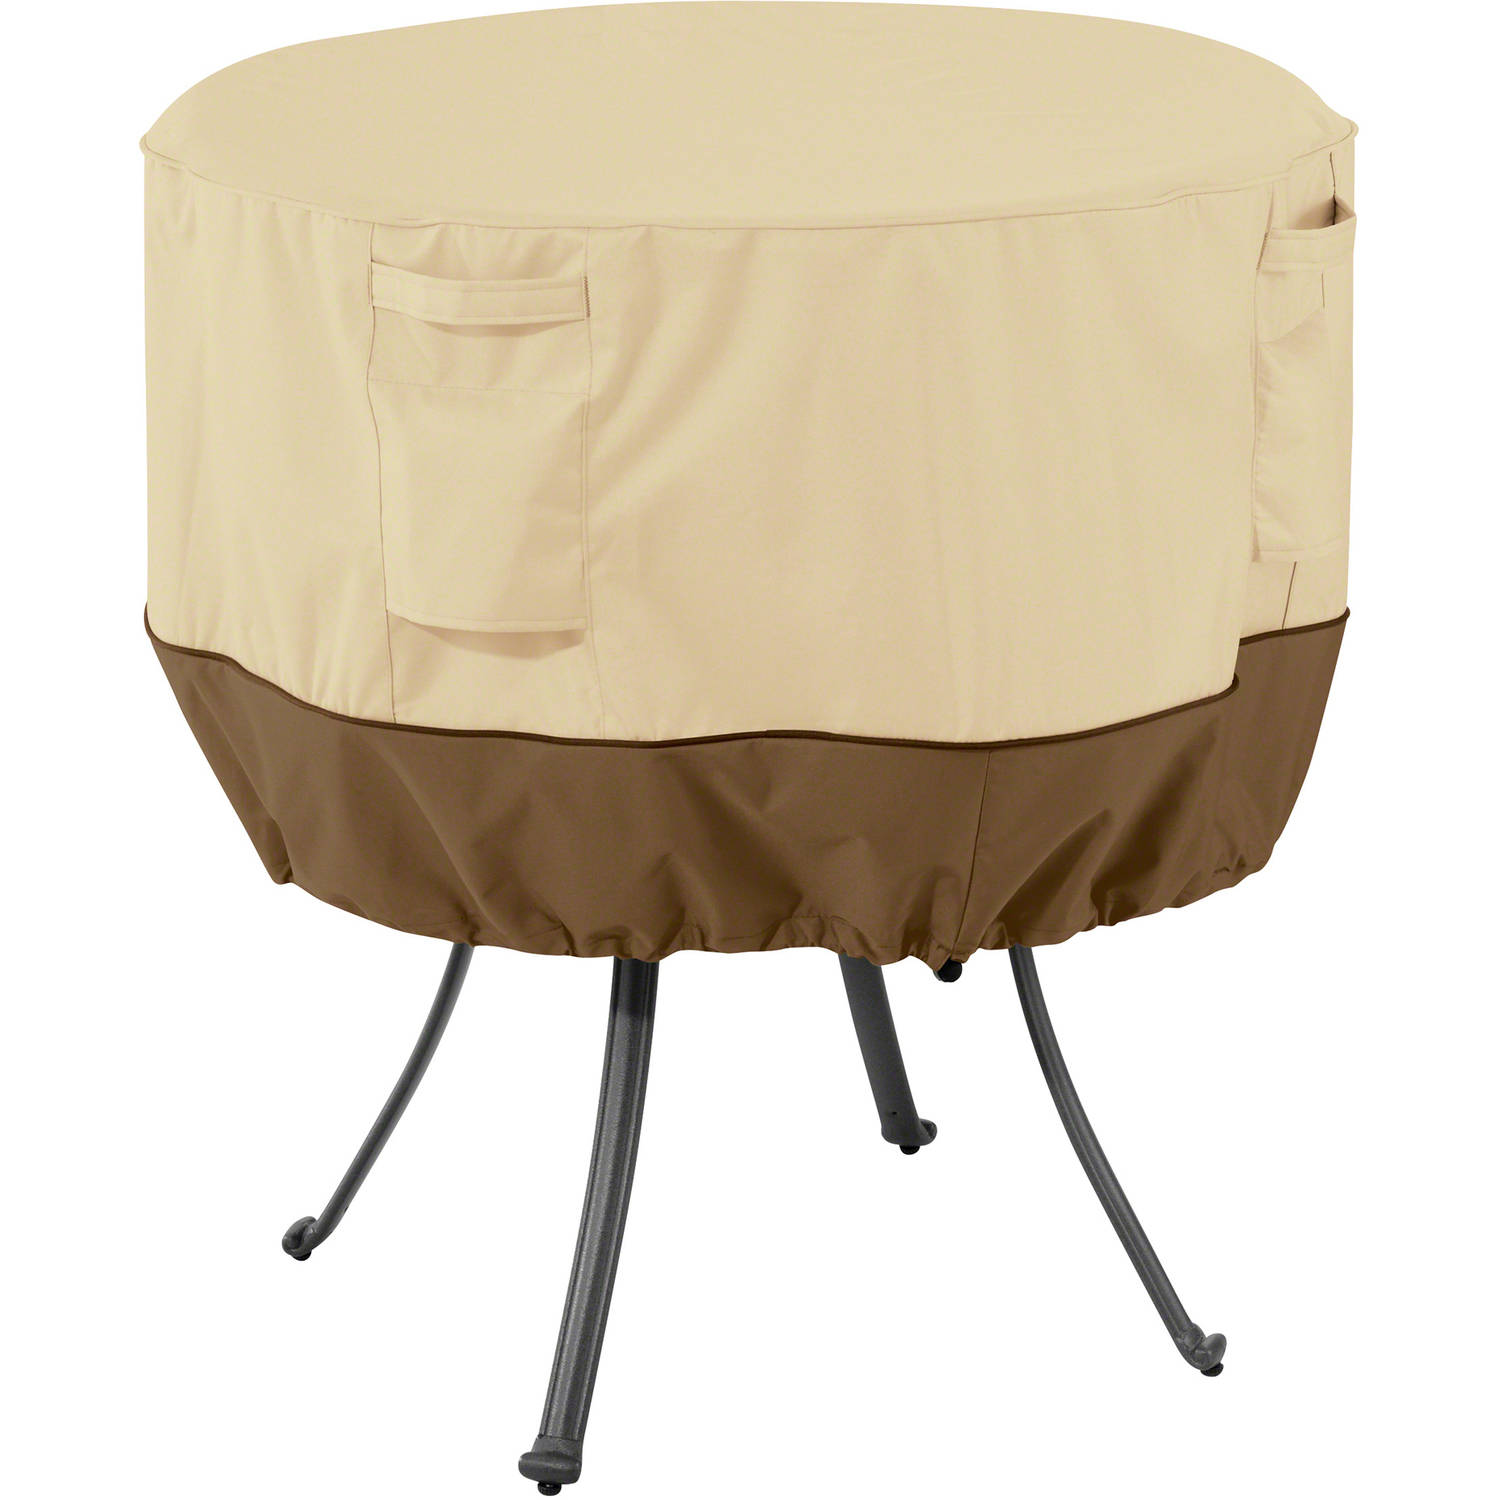 Classic Accessories Veranda Round Patio Table Furniture Storage Cover, Pebble